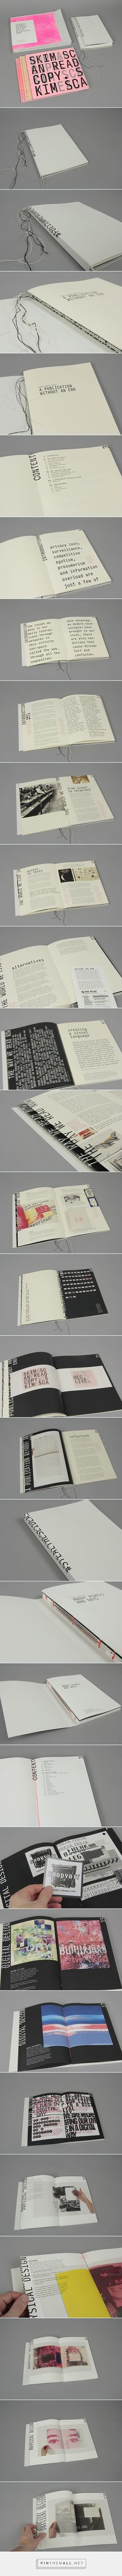 Major project submissions by Celeber Rafael de Campos on Behance - created via http://pinthemall.net